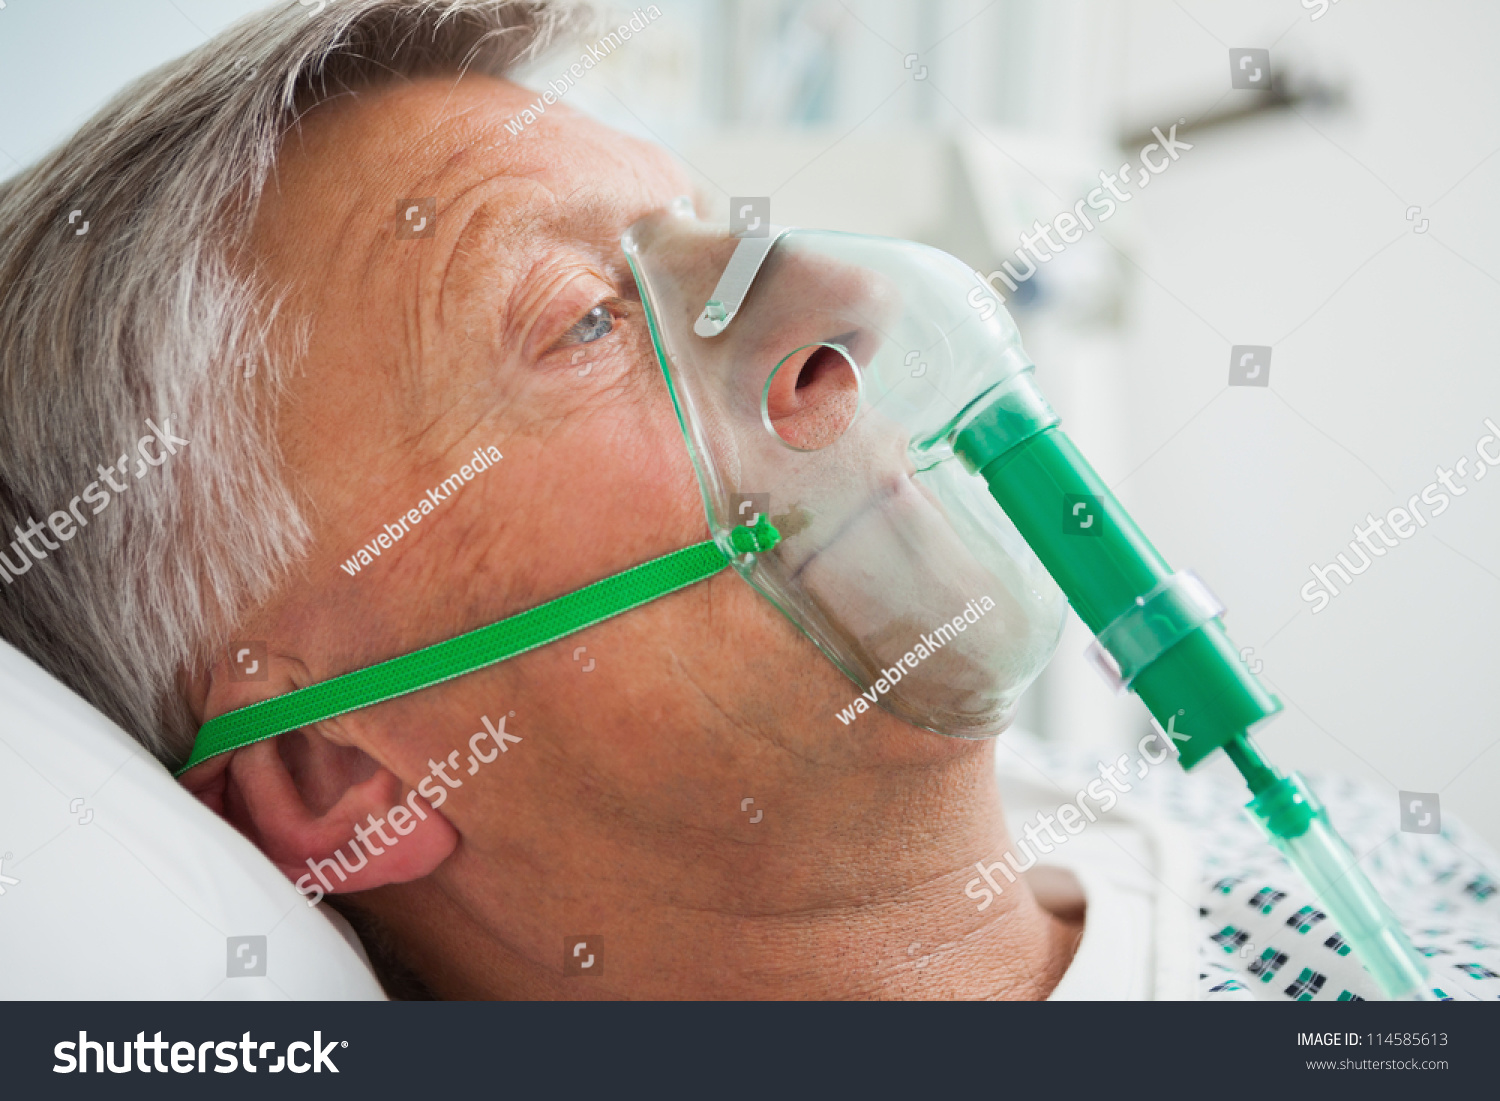 ventilation essay Mechanical ventilation is also called positive pressure ventilation following an inspiratory trigger, a predetermined mixture of air (ie, oxygen and other gases) is forced into the central airways and then flows into the alveoli.